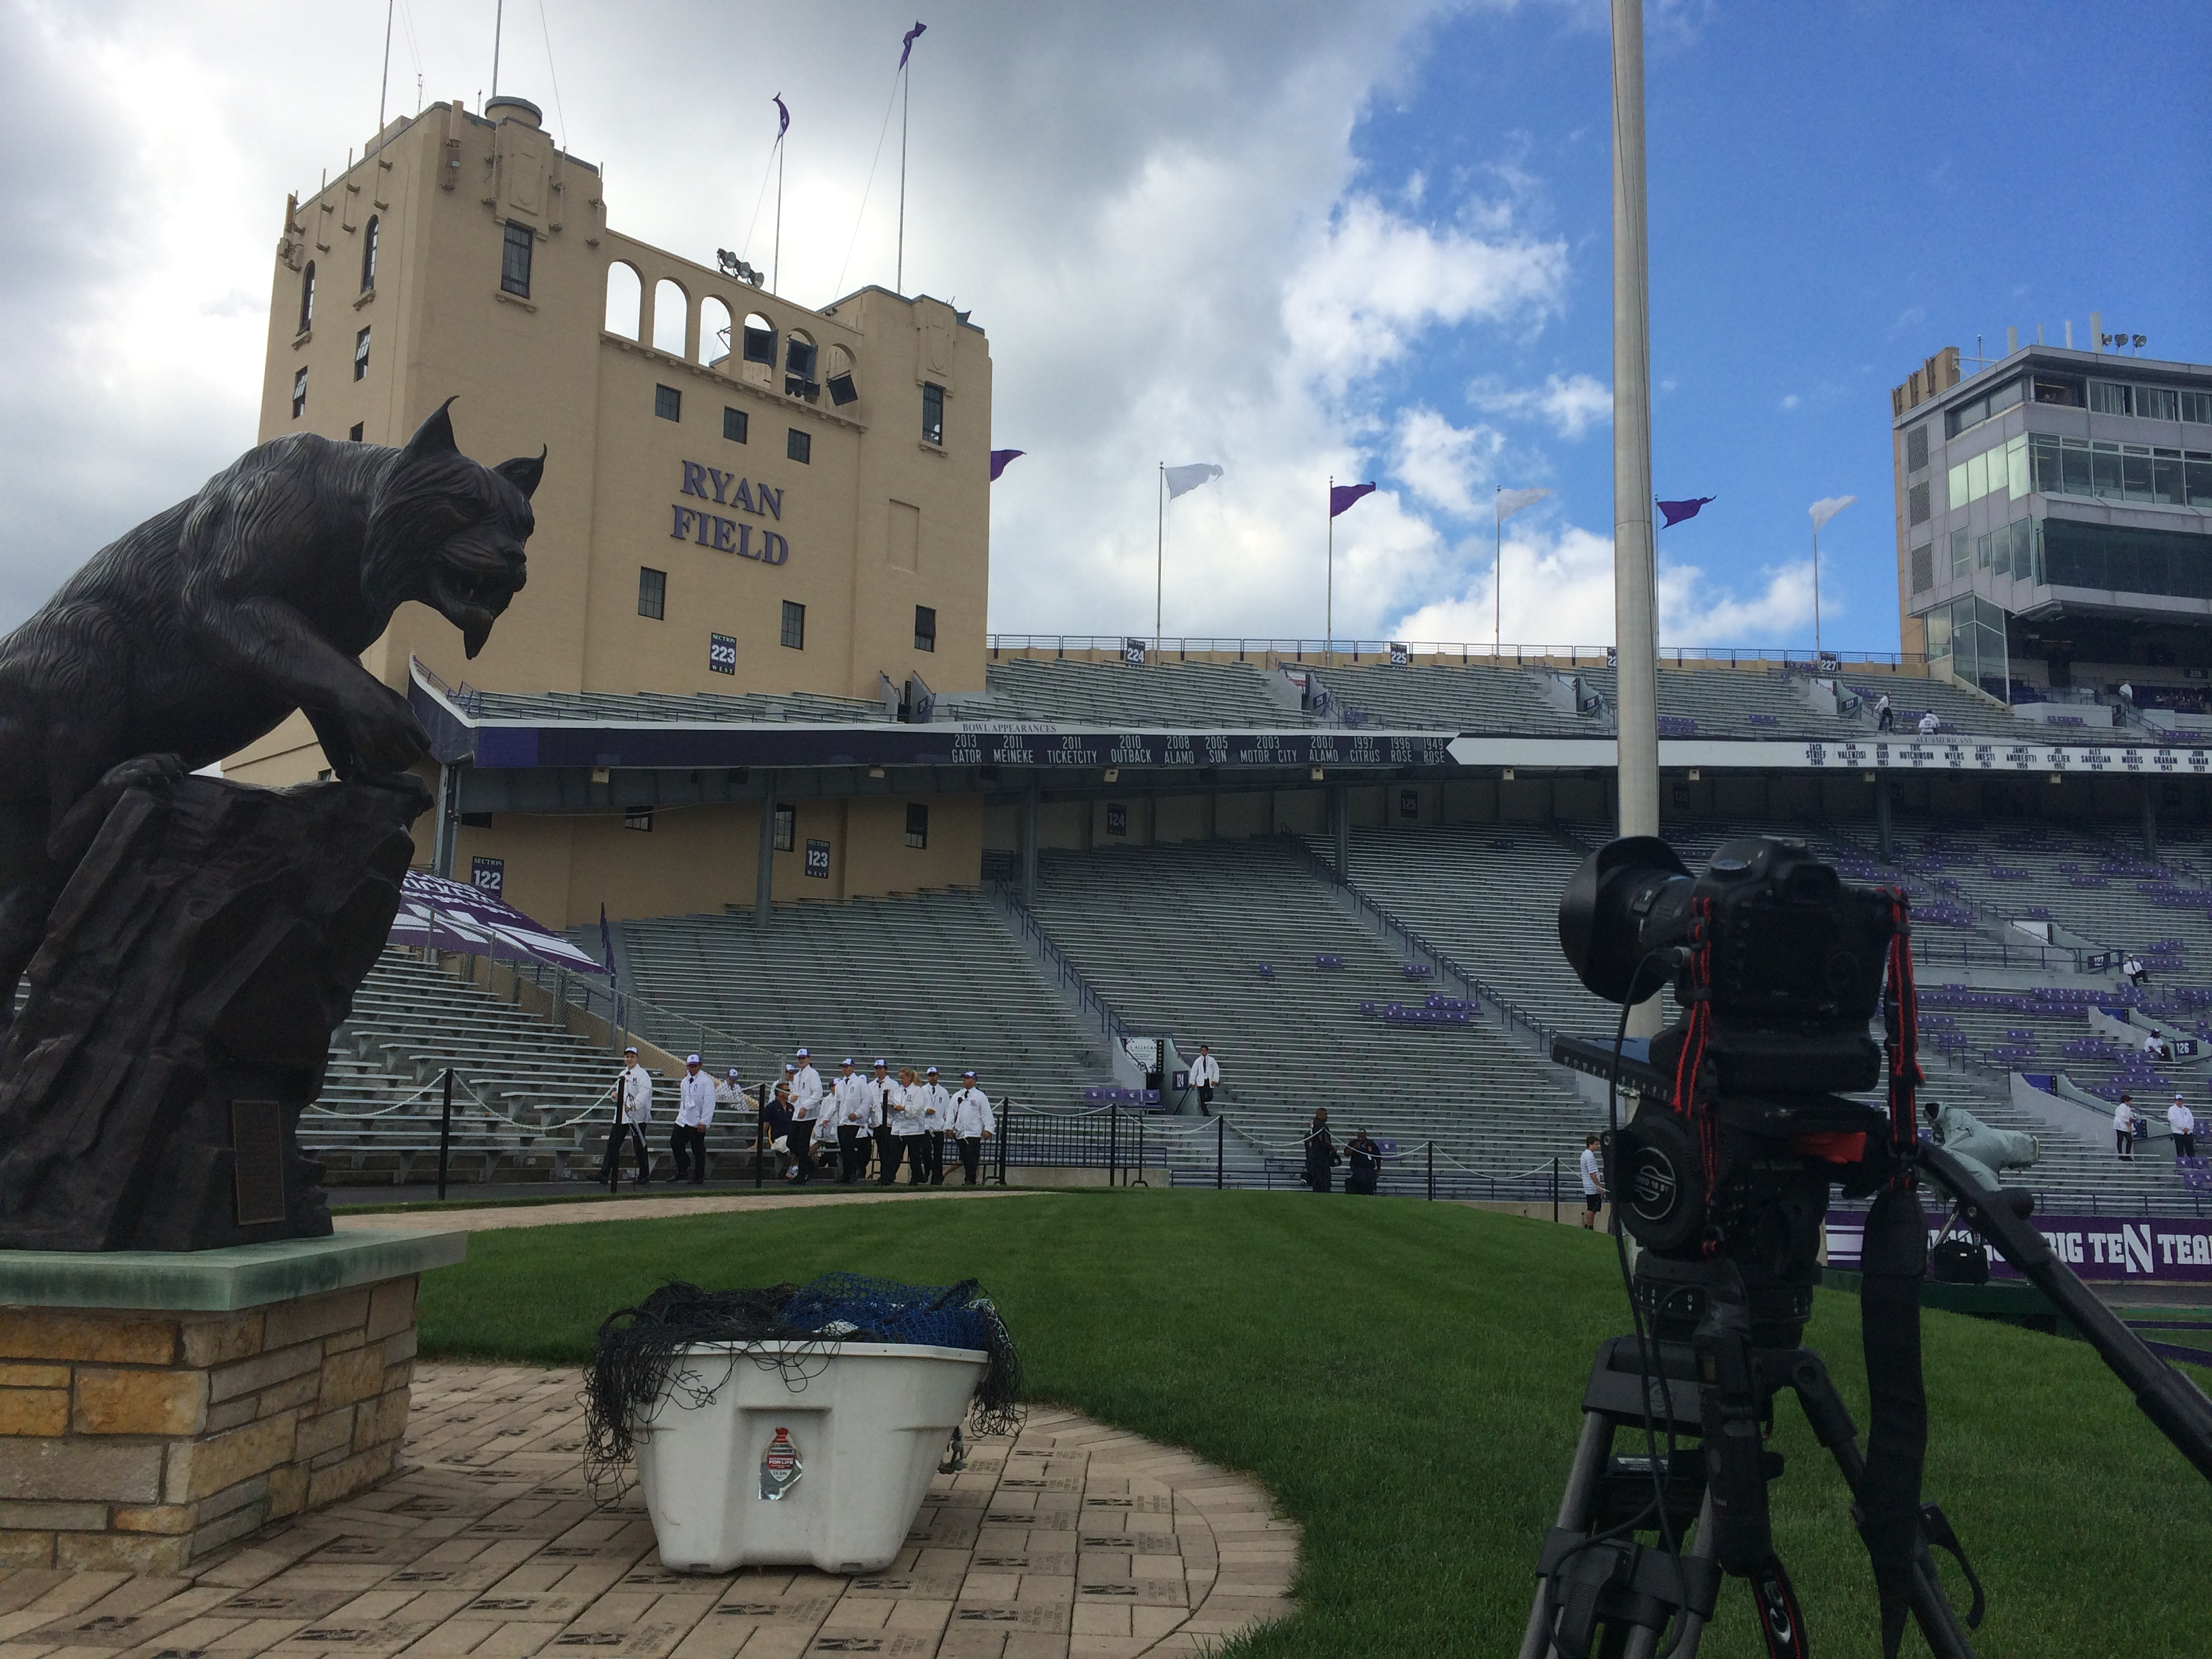 2014 08 30 12.57.46 Chicago Video Crew kicks off College Football Season at Northwestern